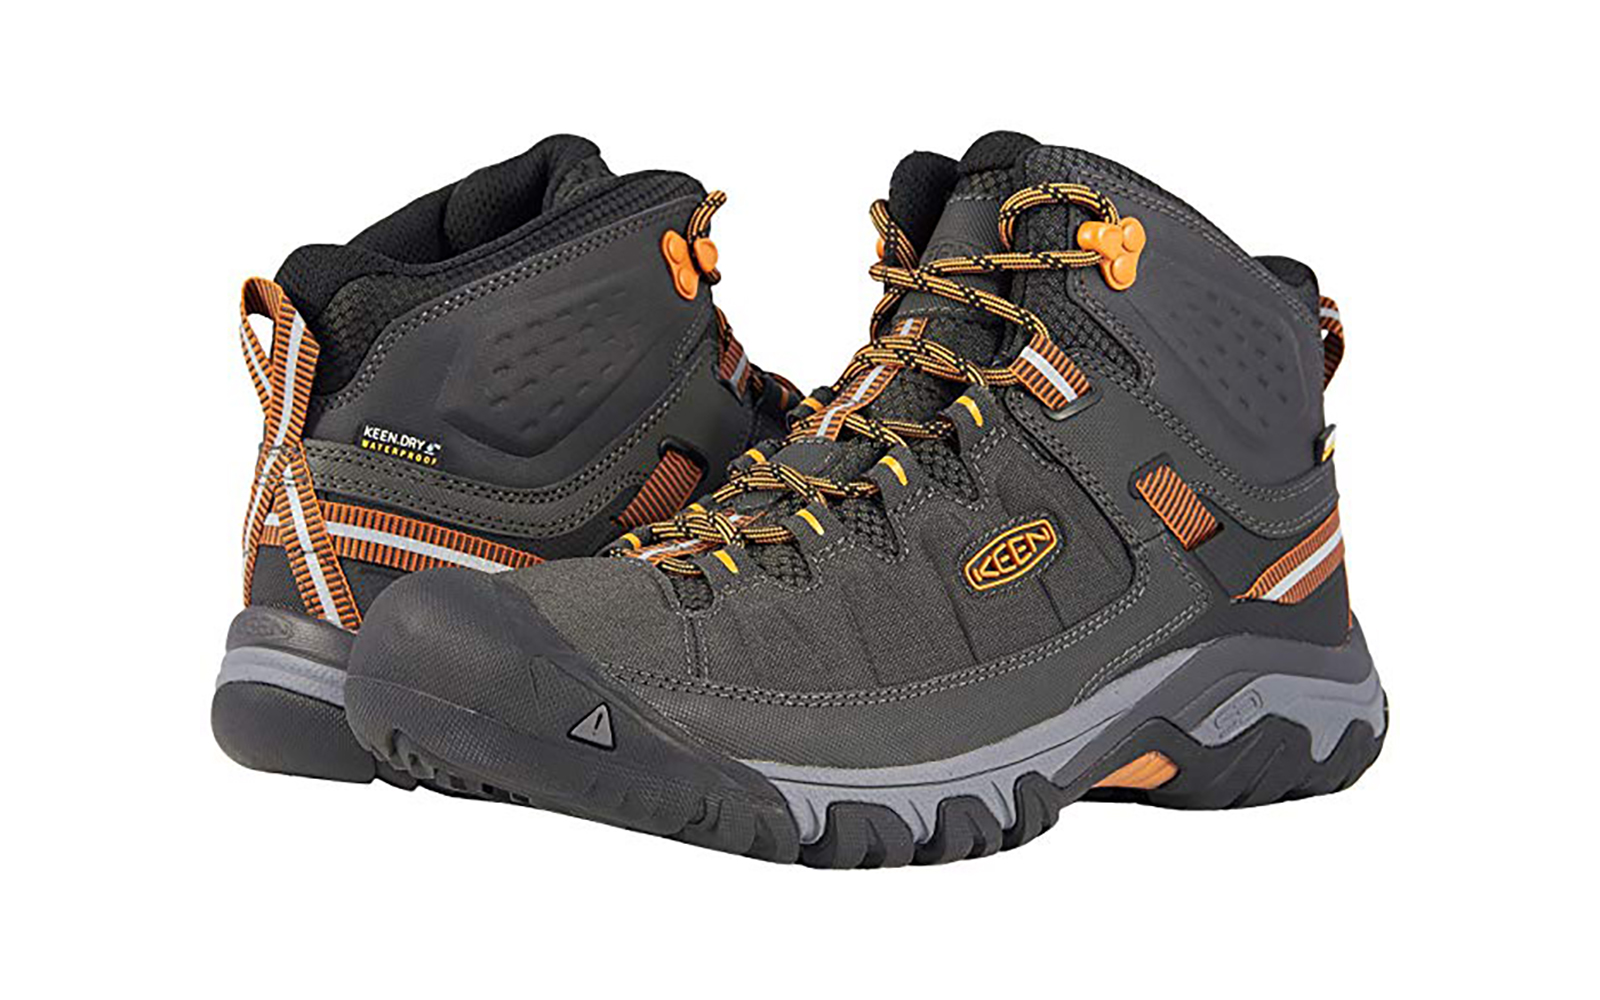 Keen Targhee Exp Mid WP Hiking Boot